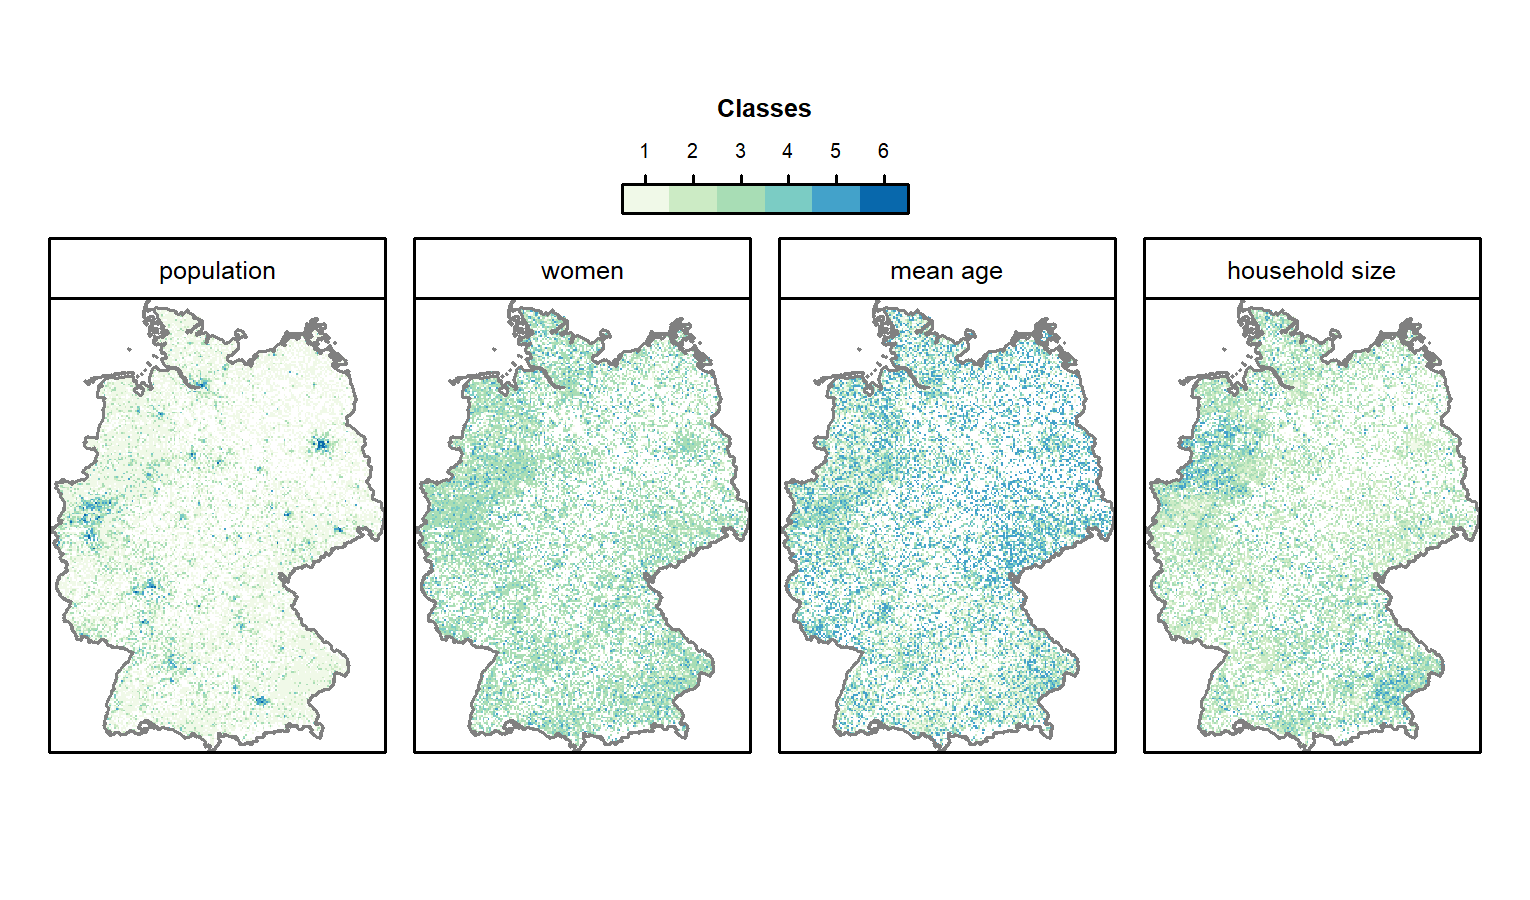 Gridded German census data of 2011. See Table 13.1 for a description of the classes.